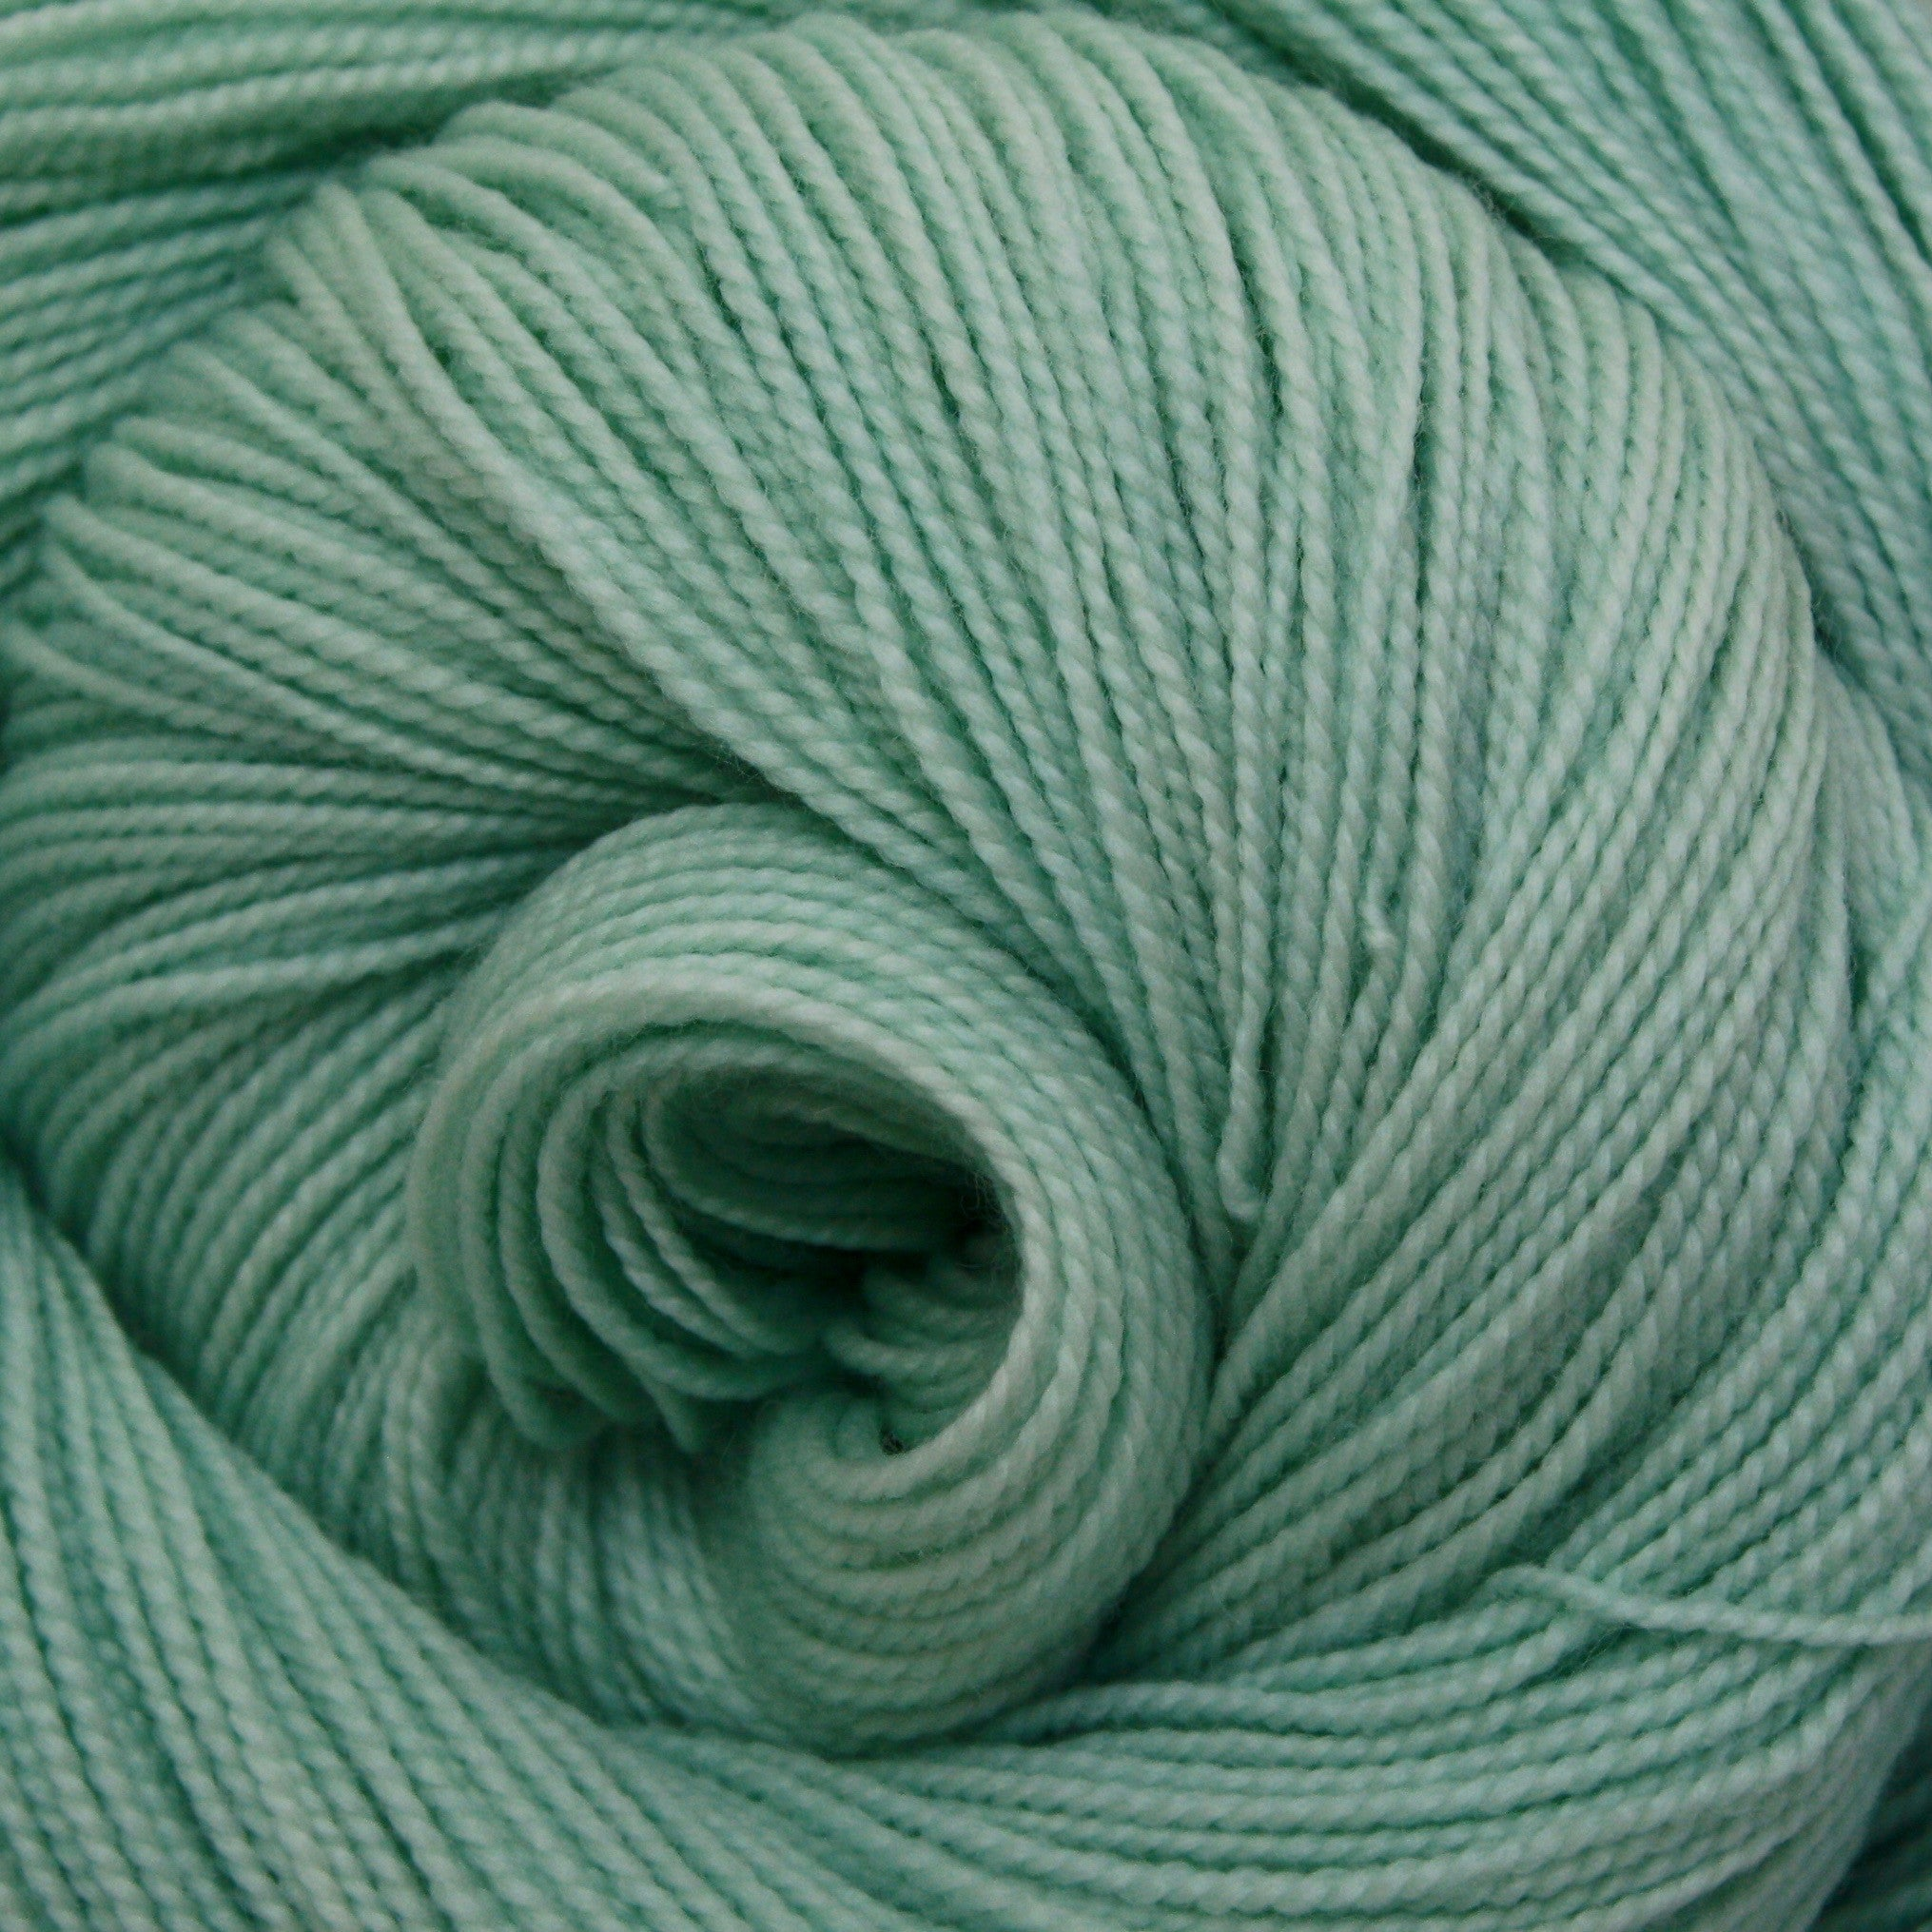 Celeste Yarn | Colorway: Araucana